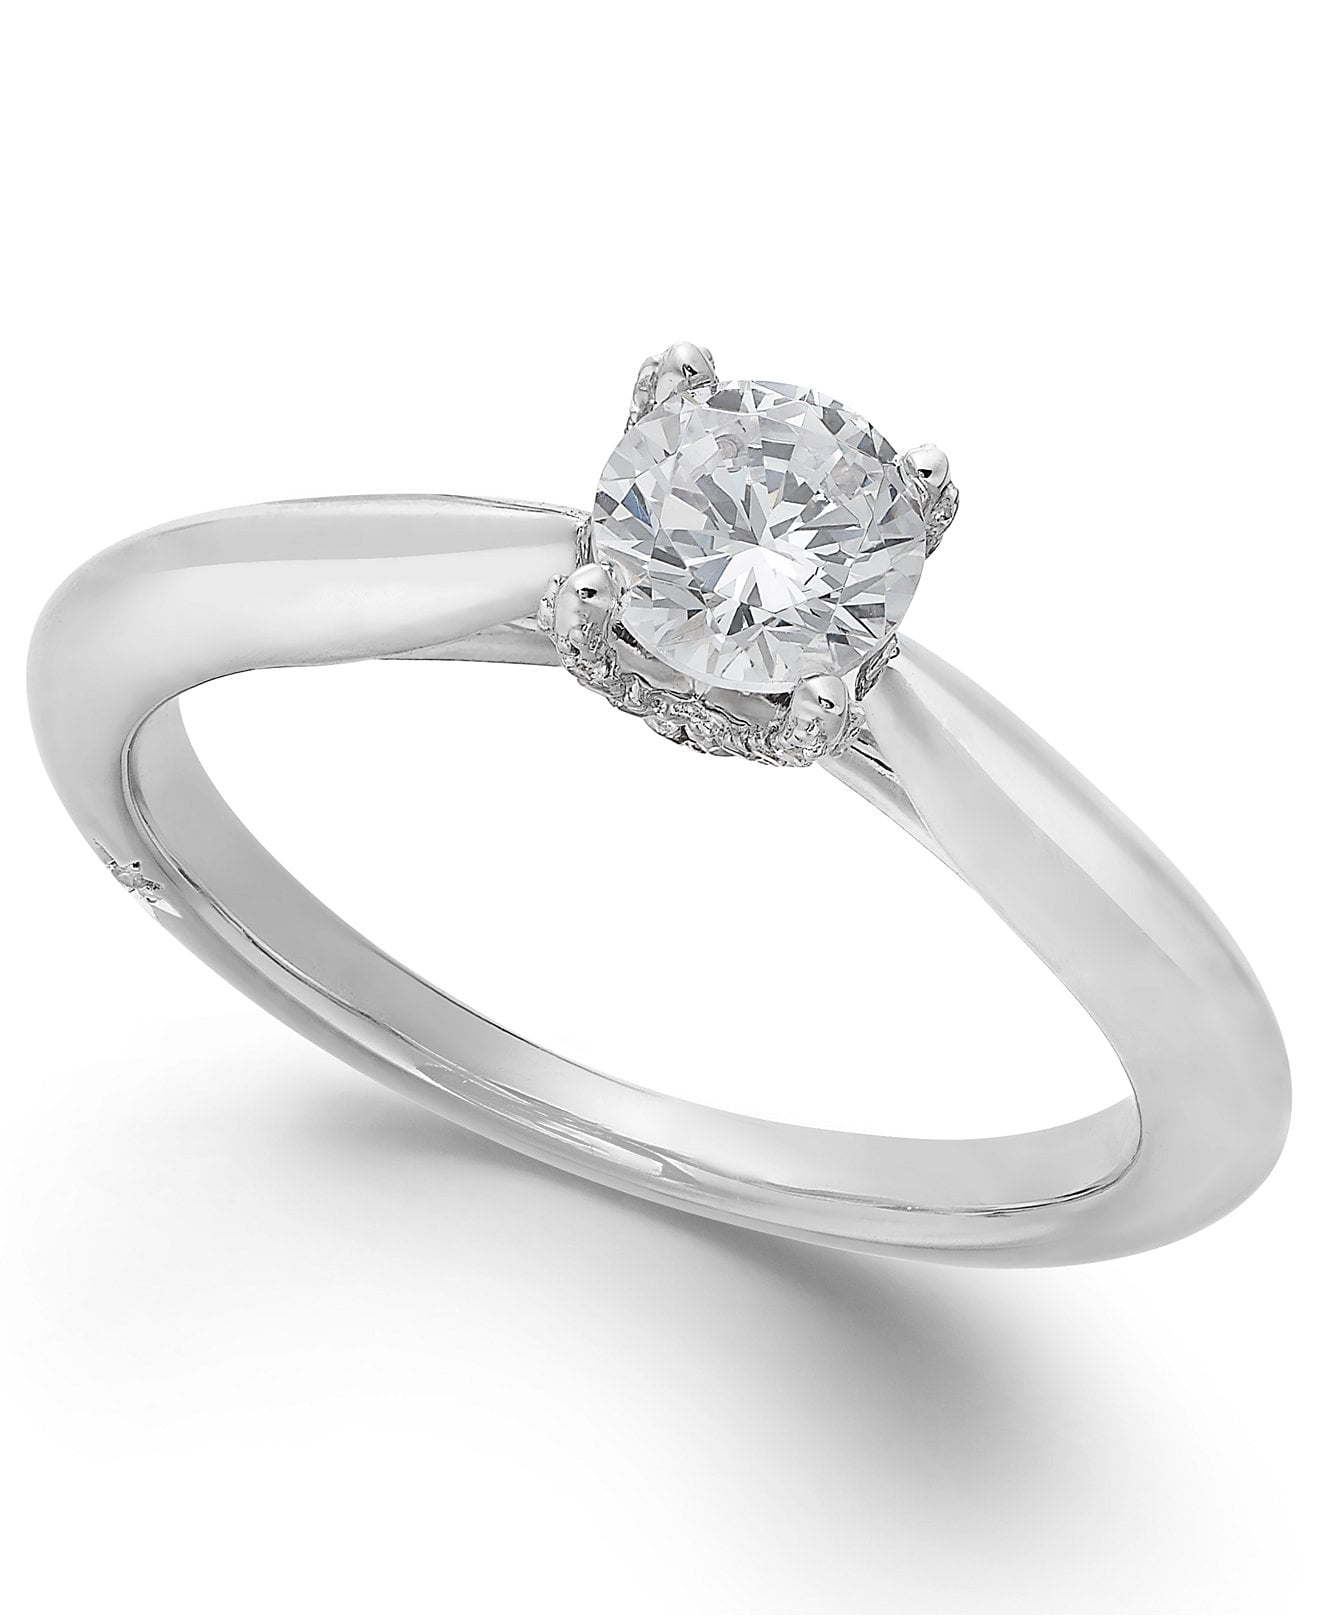 Classic by Marchesa Certified Diamond Solitaire Engagement Ring in